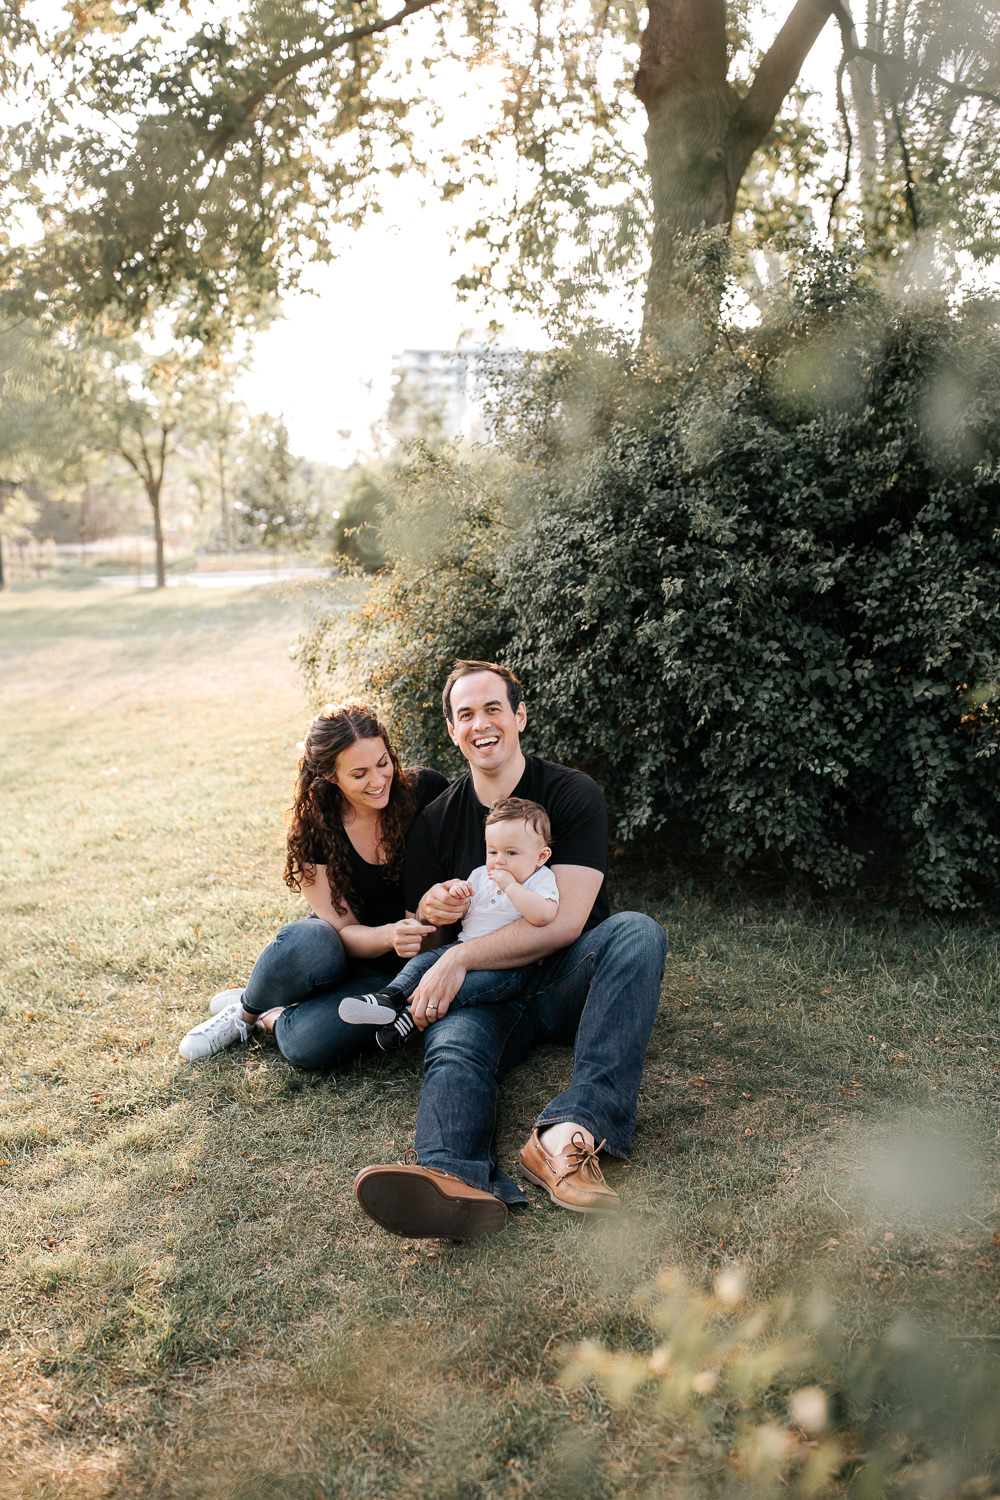 family of 3 sitting on ground in park, 9 month old baby boy with dark hair sitting in dad's lap chewing on hand, mom snuggled next to them, father laughing -Newmarket Lifestyle Photos